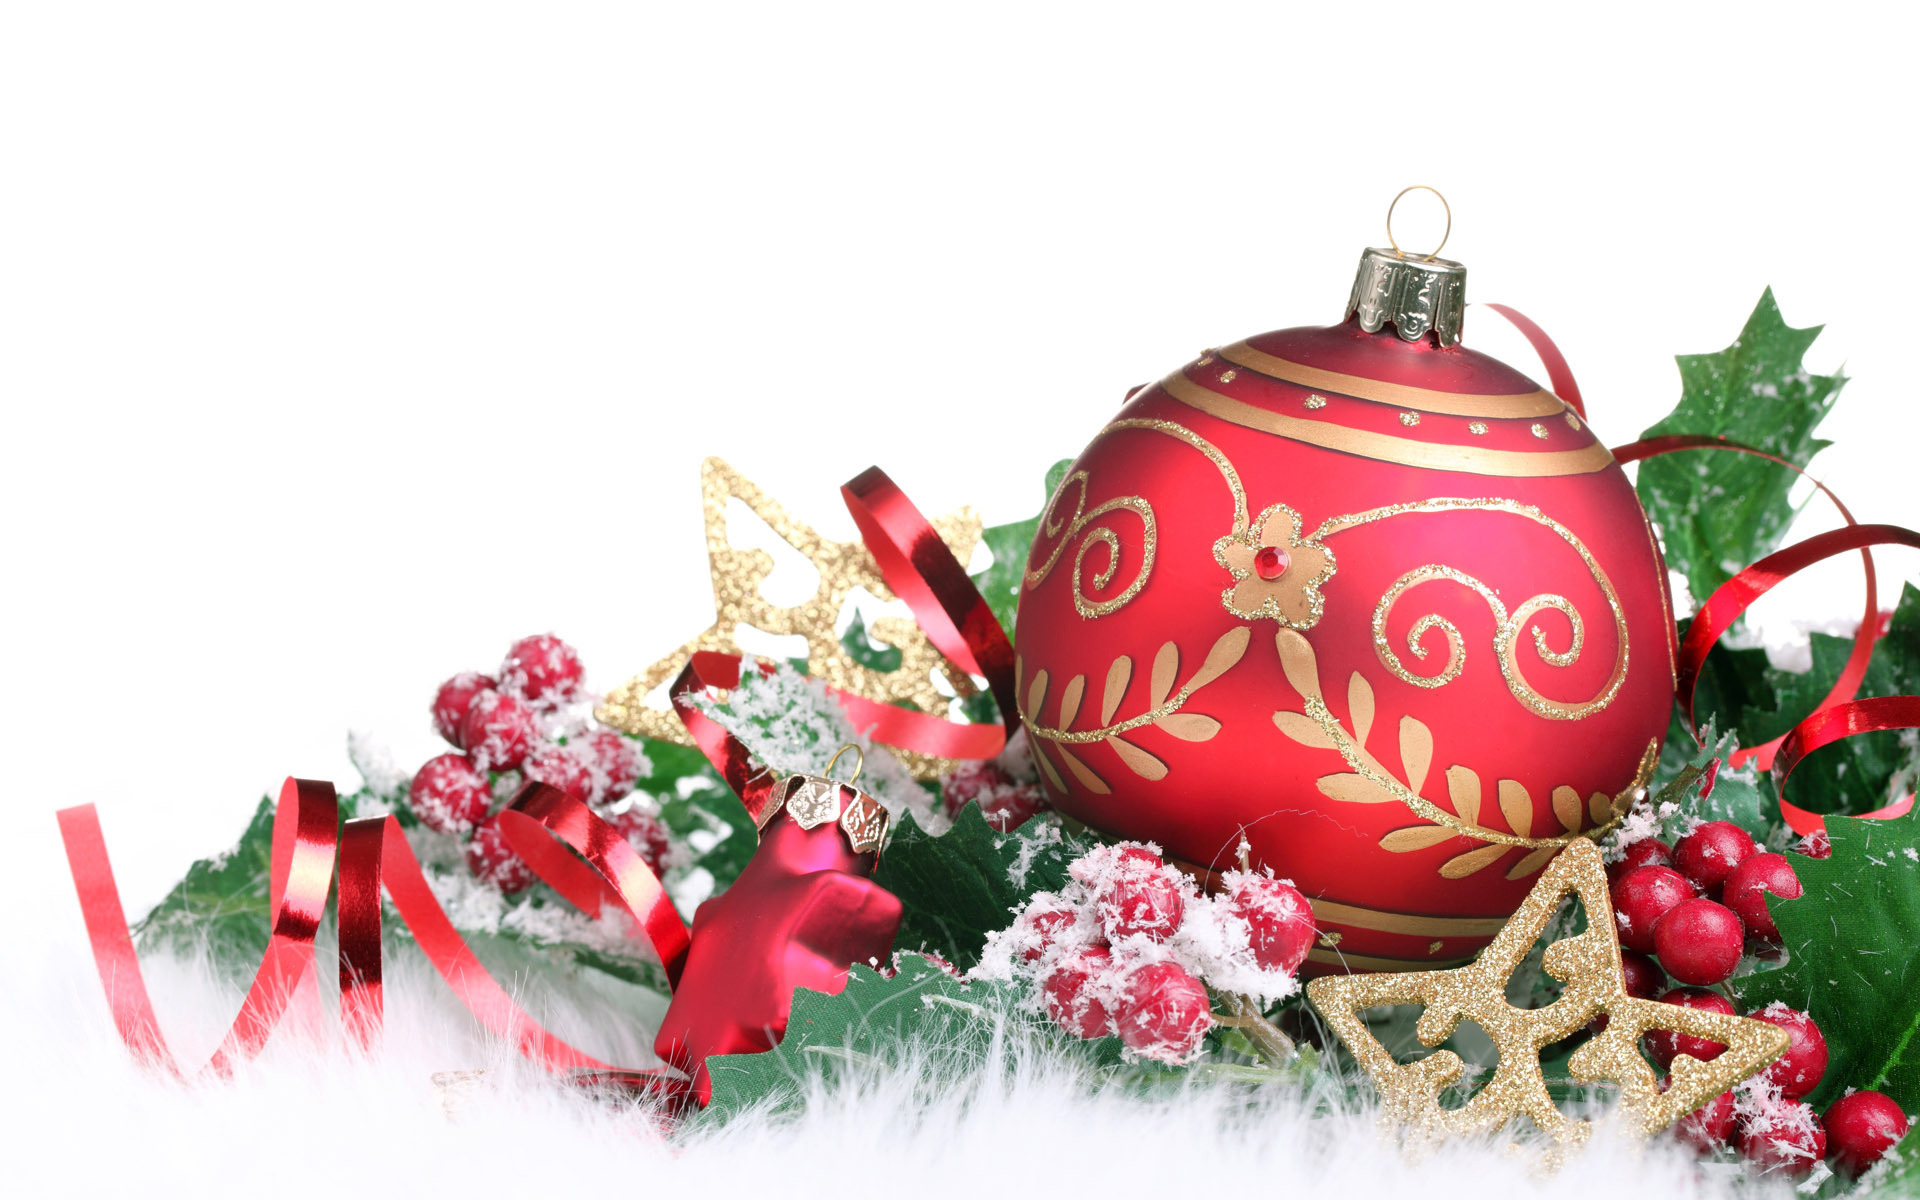 christmas images red christmas decorations hd wallpaper and background photos - Merry Christmas Decorations